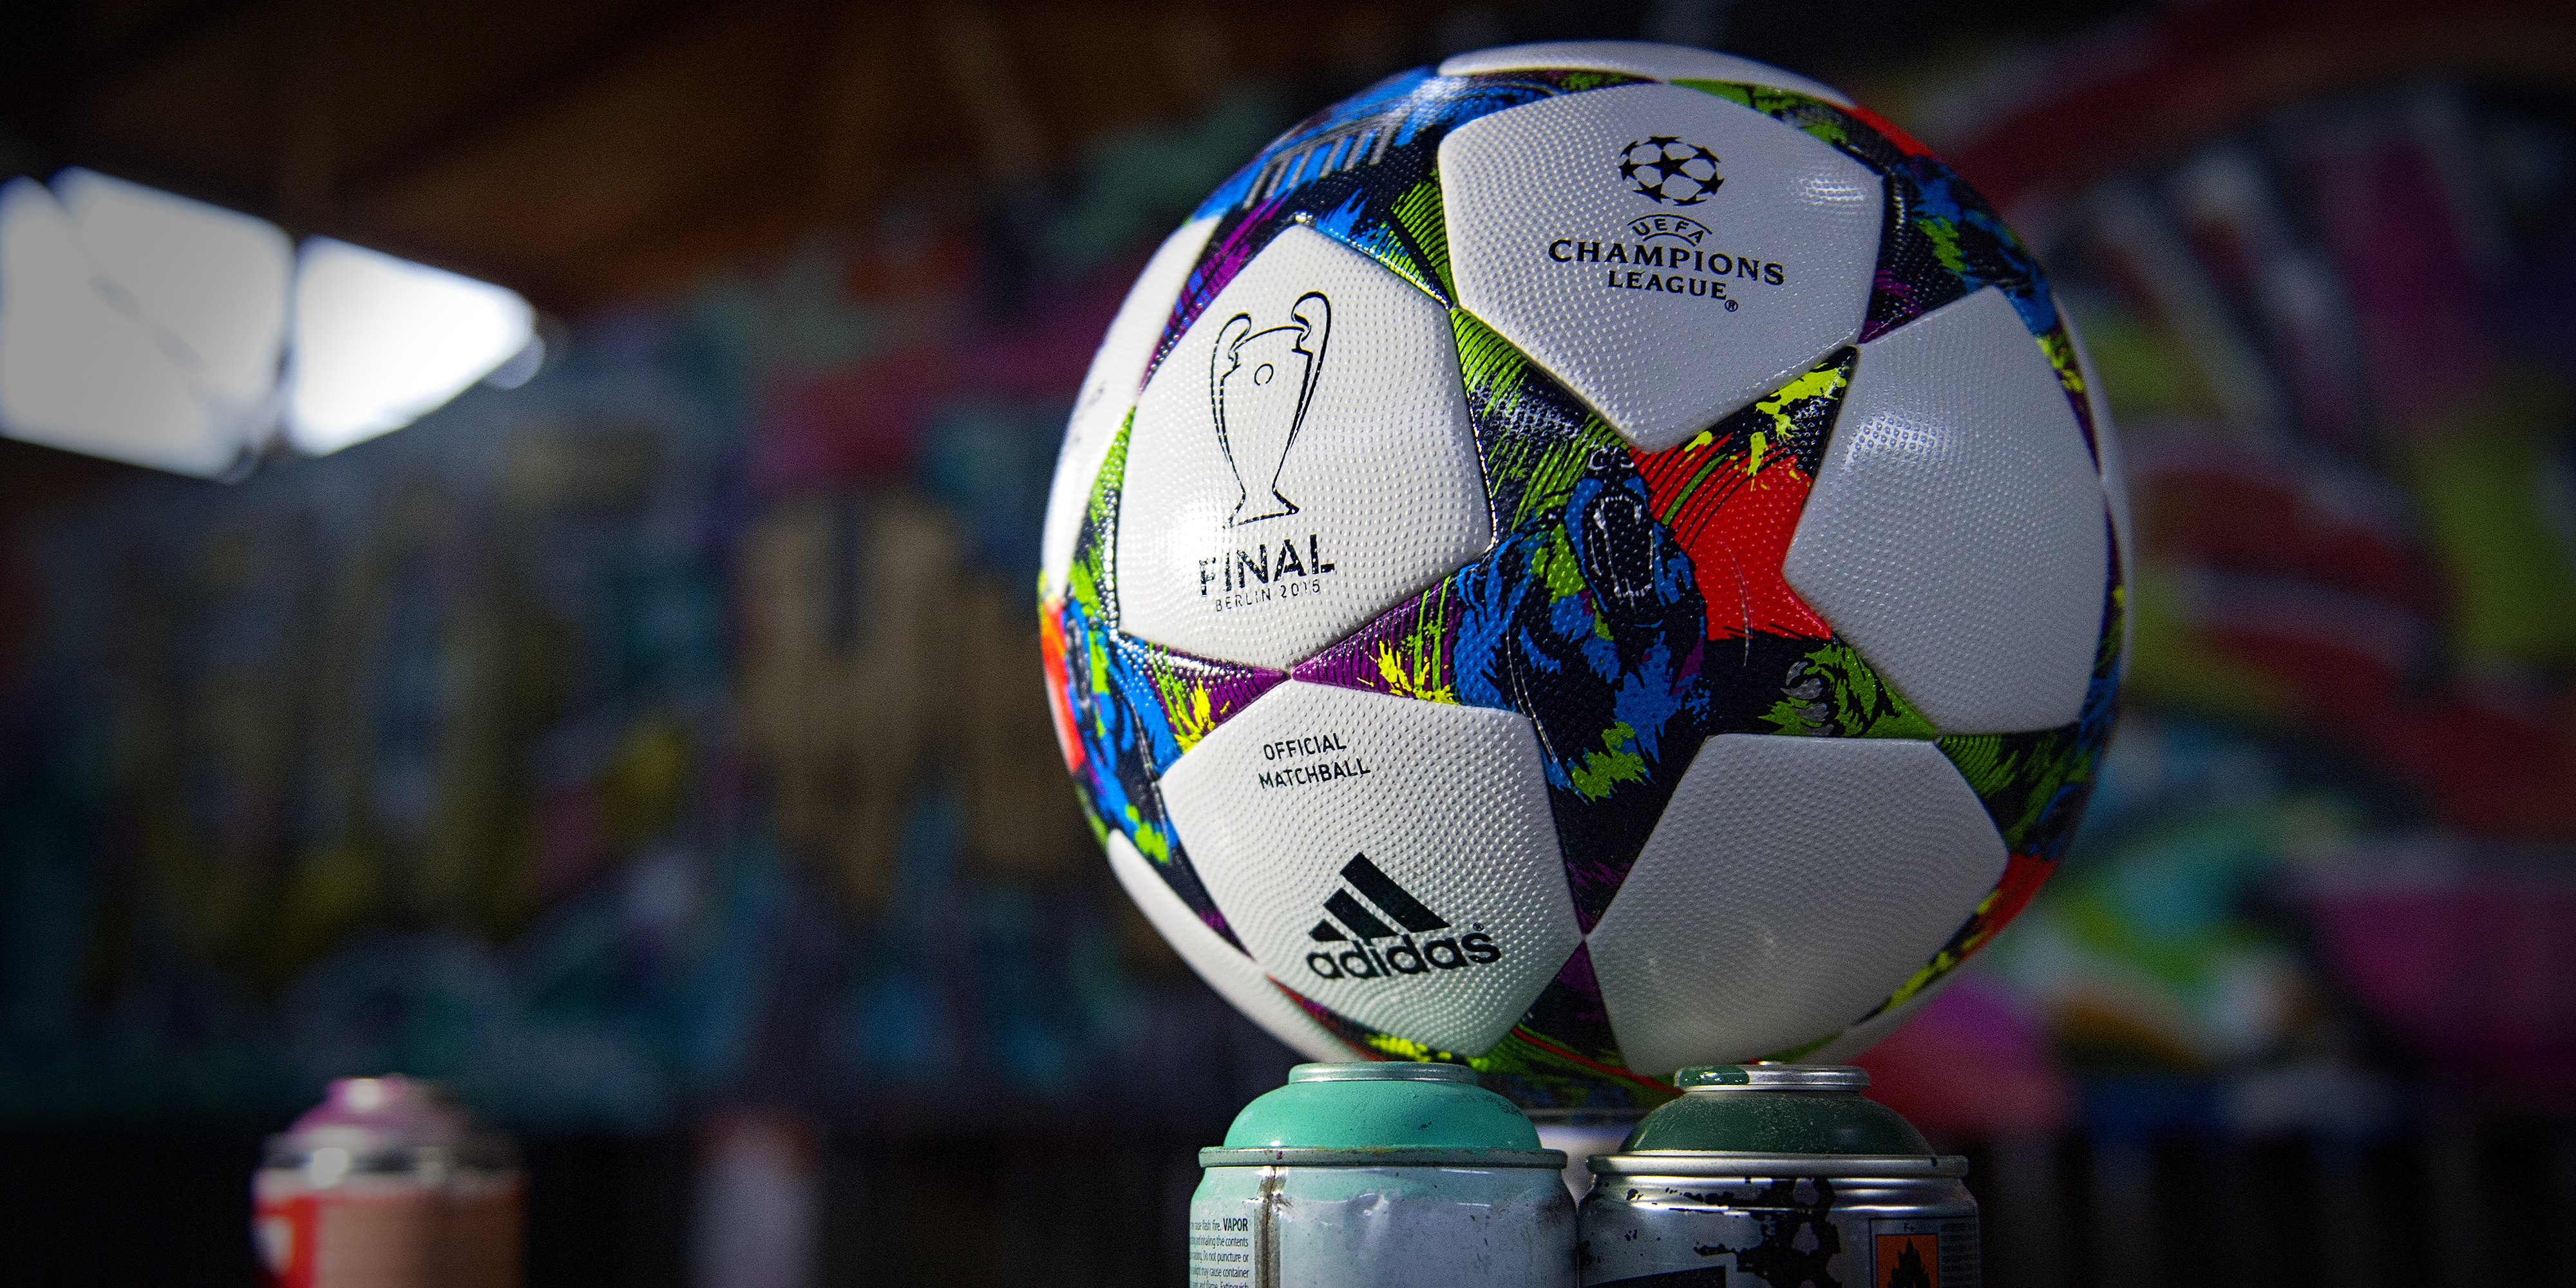 Champions Image: Adidas Champions League